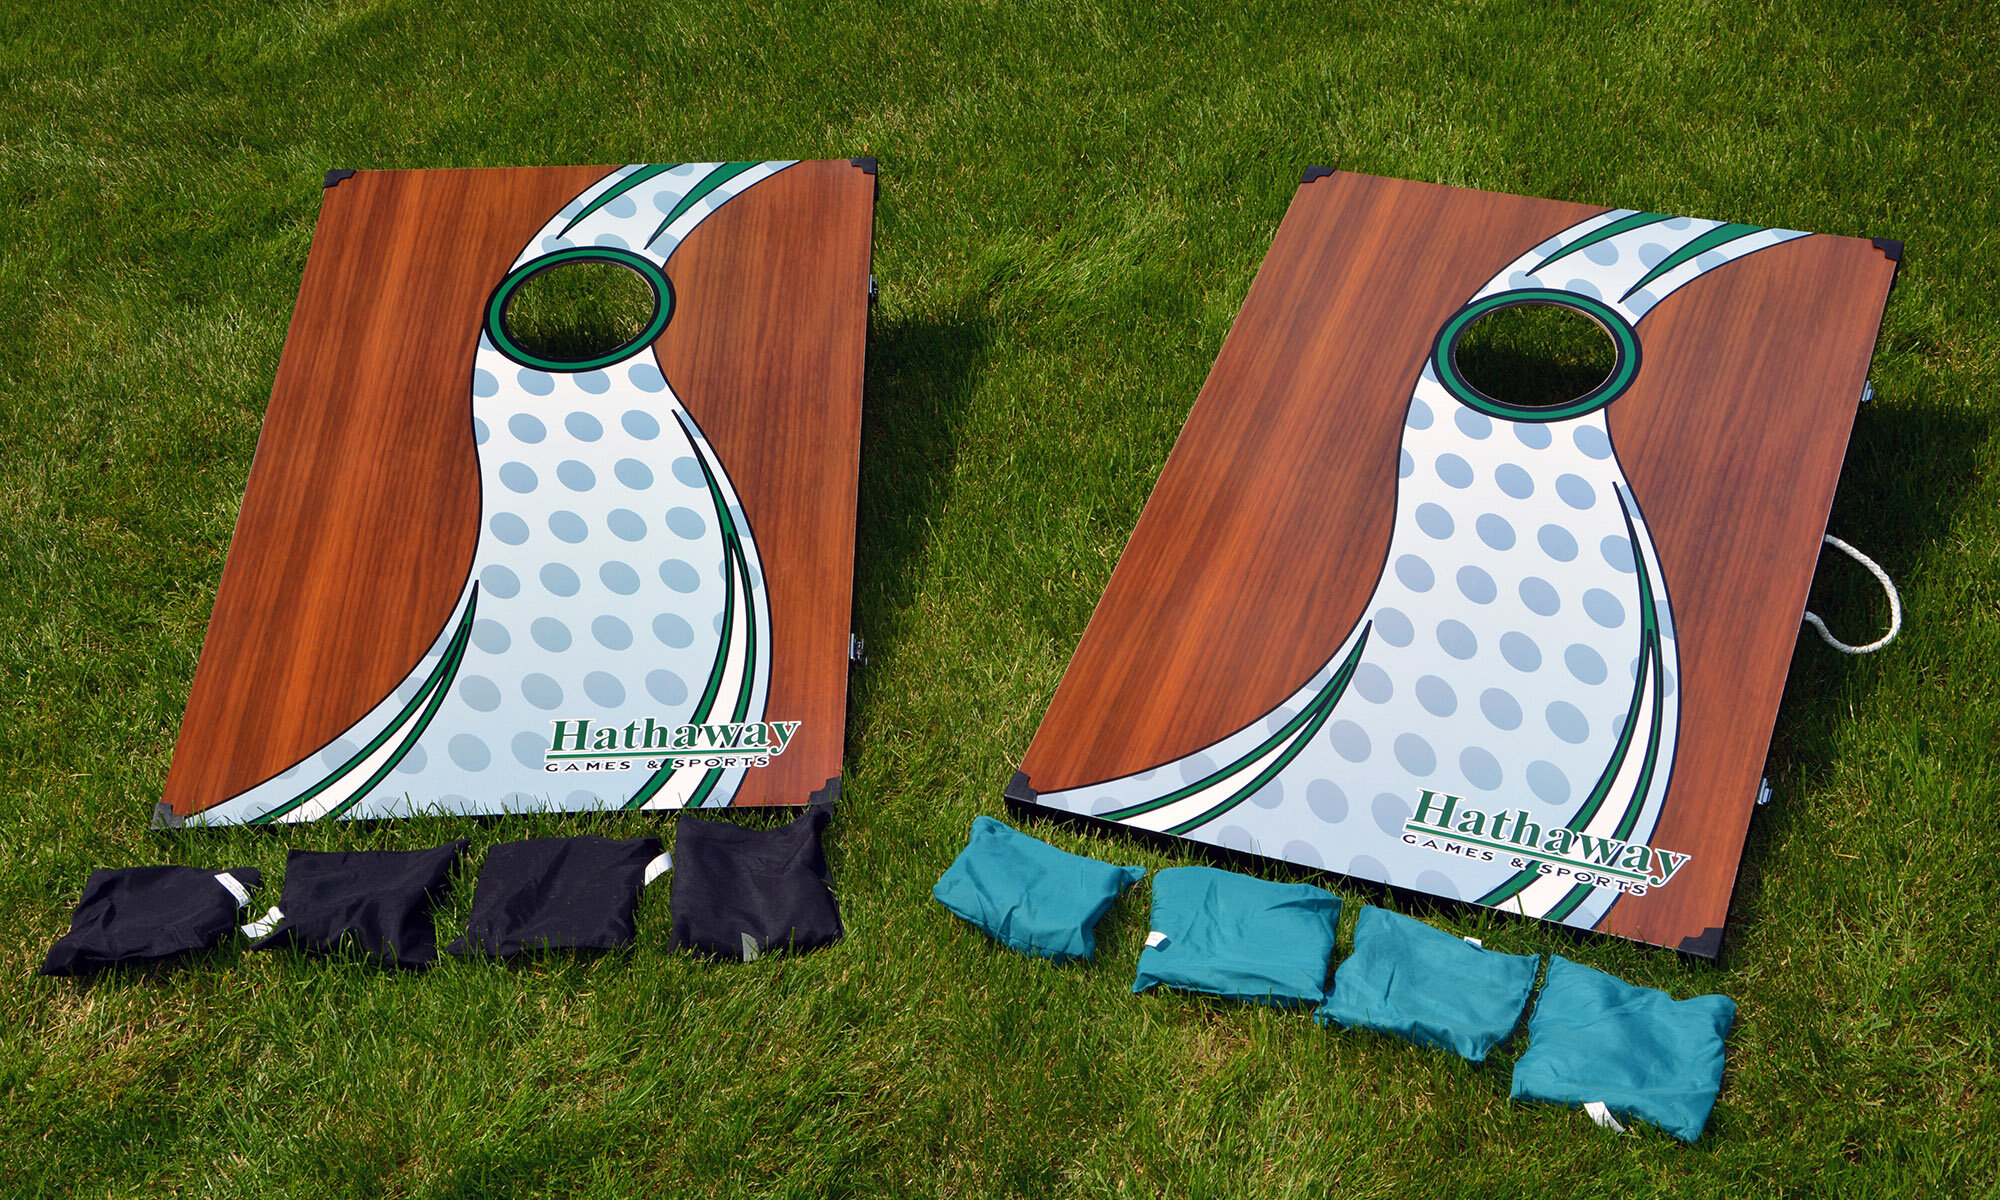 Stupendous Hathaway Games Cornhole Bean Bag Toss Game Set Reviews Ocoug Best Dining Table And Chair Ideas Images Ocougorg